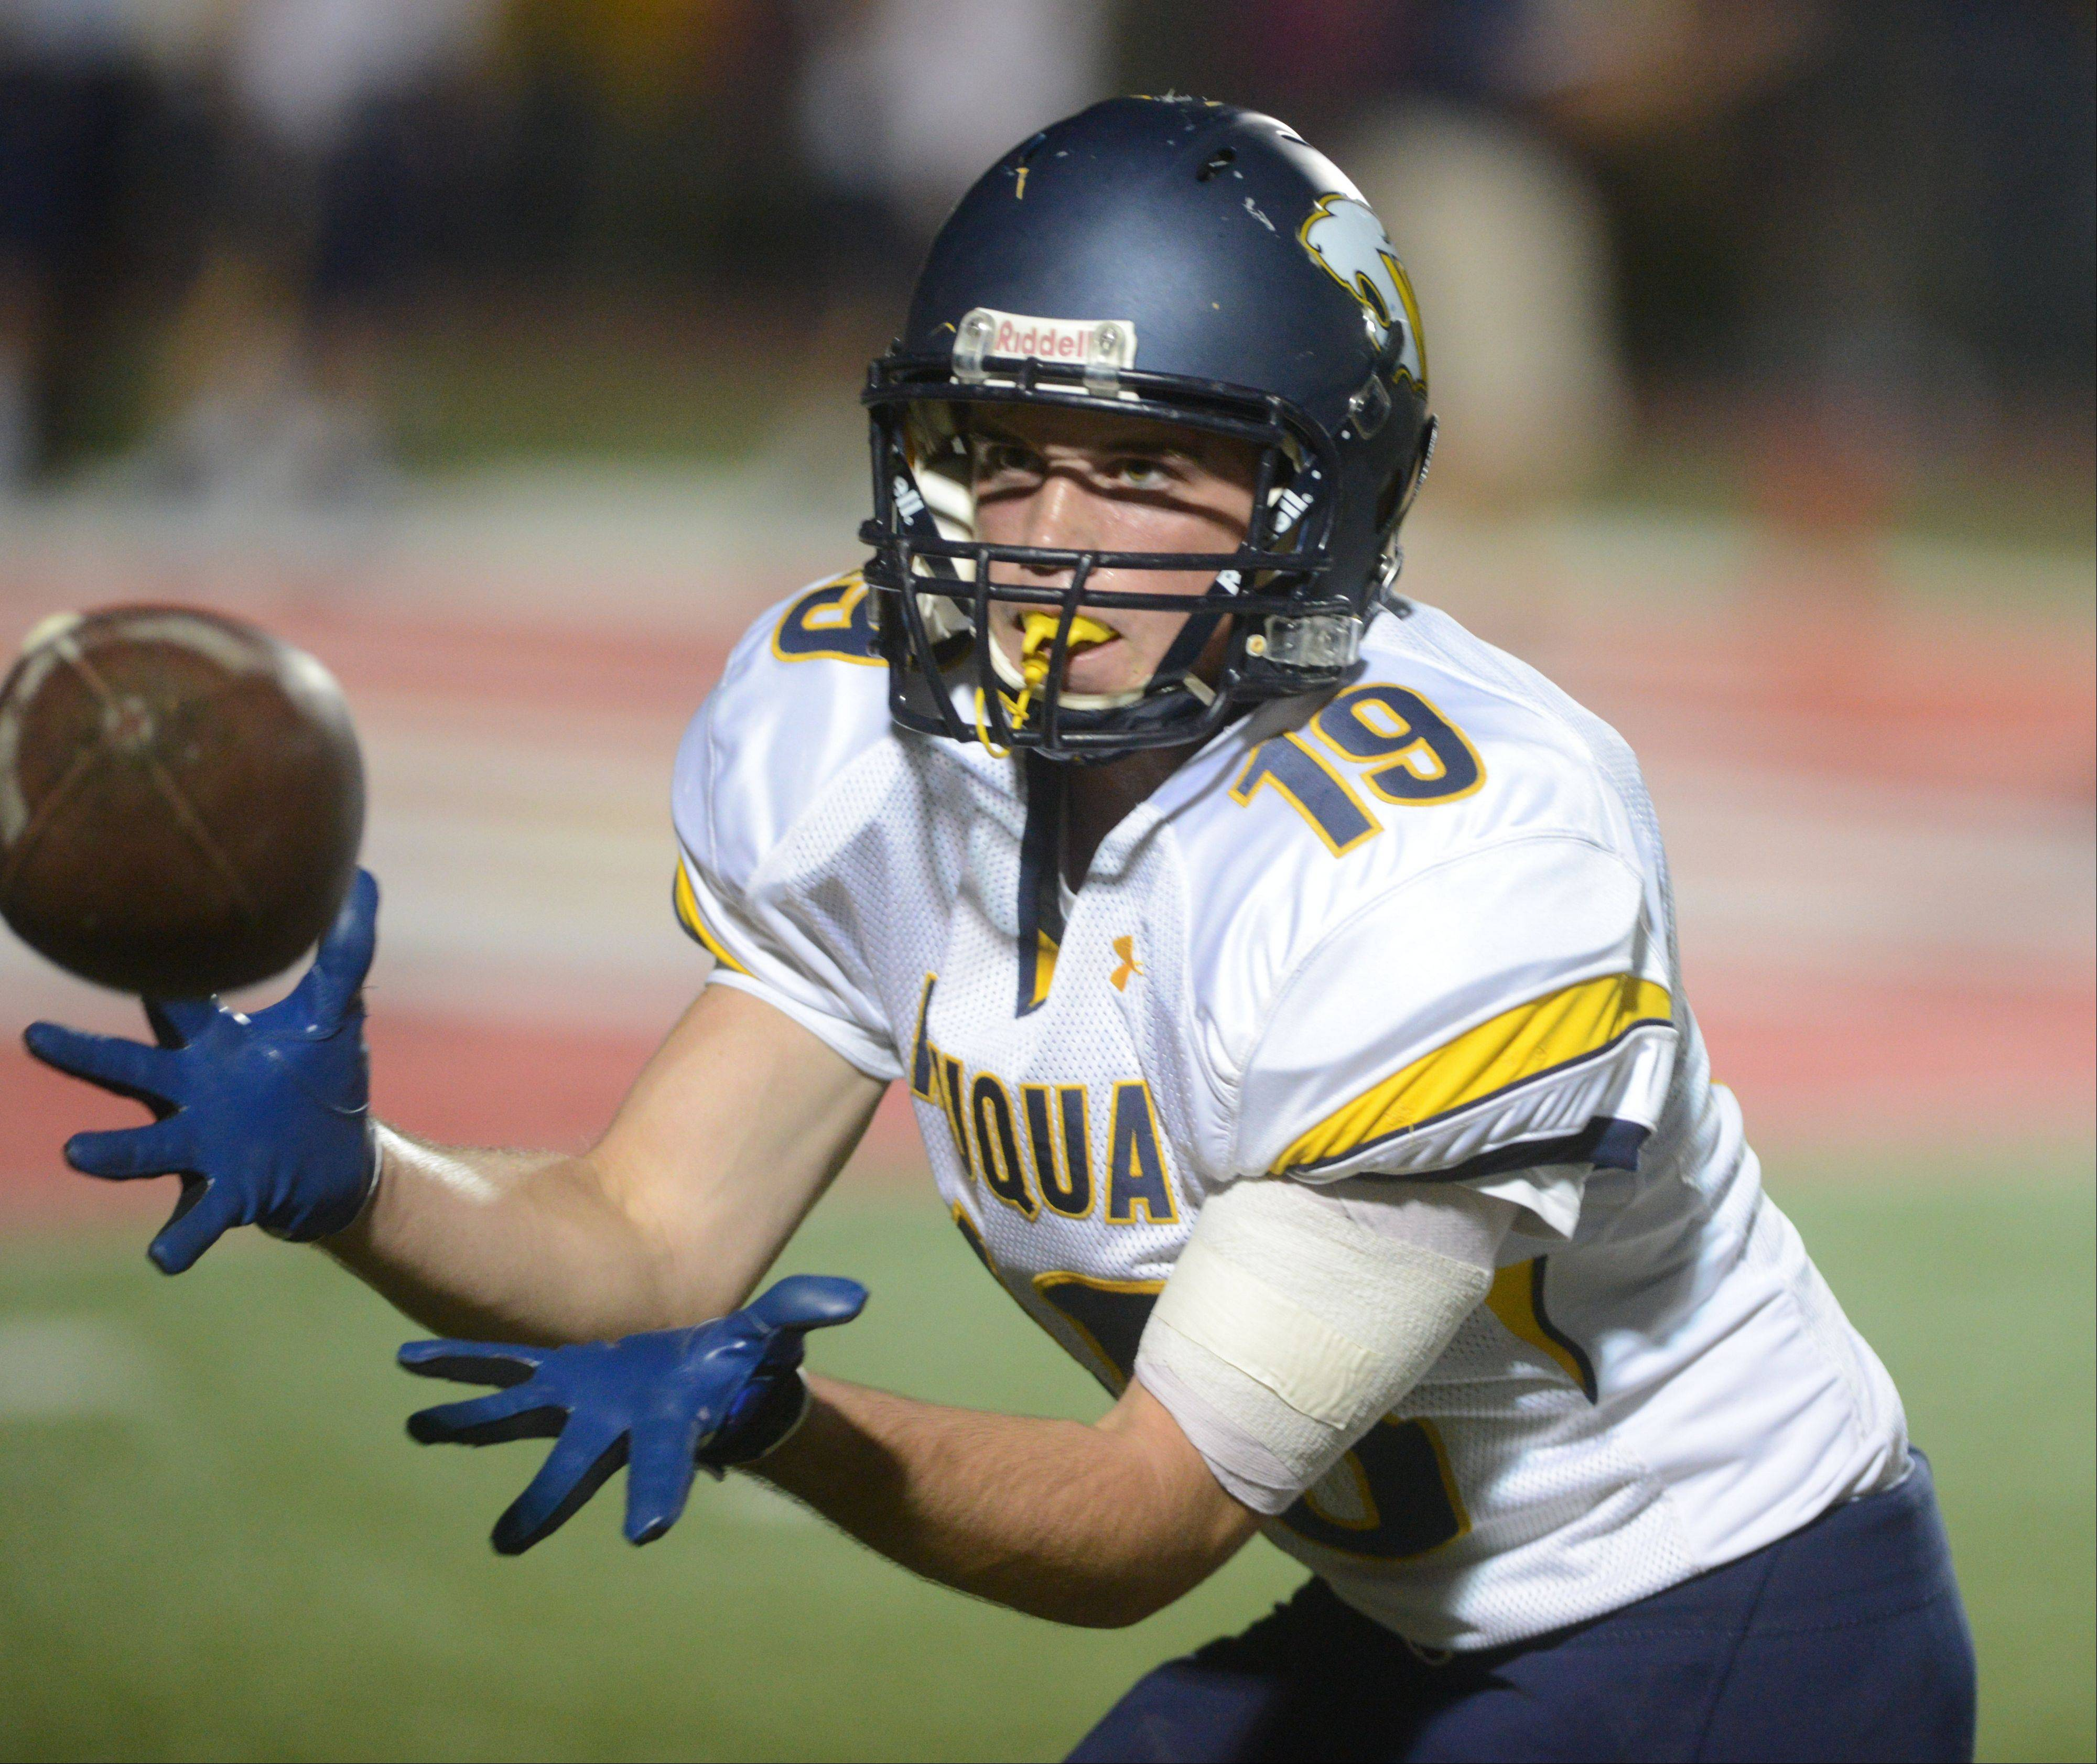 Week-7- Photos from the Neuqua Valley vs. Waubonsie Valley football game on Friday, October 11 at North Central College in Naperville.